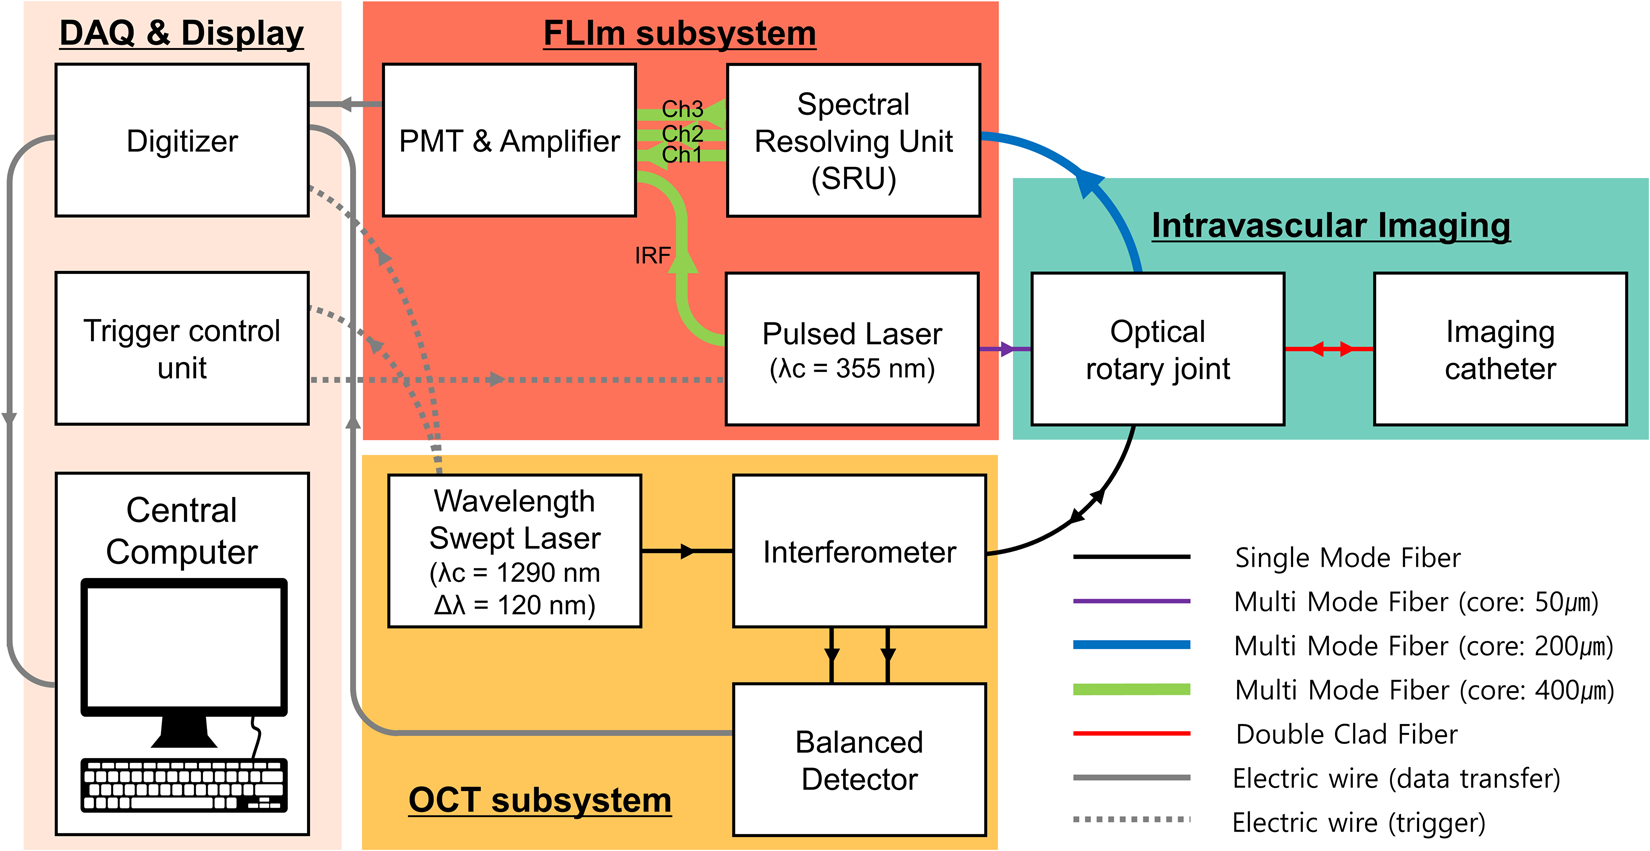 Comprehensive Intravascular Imaging Of Atherosclerotic Plaque In Scytek Schematic Vivo Using Optical Coherence Tomography And Fluorescence Lifetime Scientific